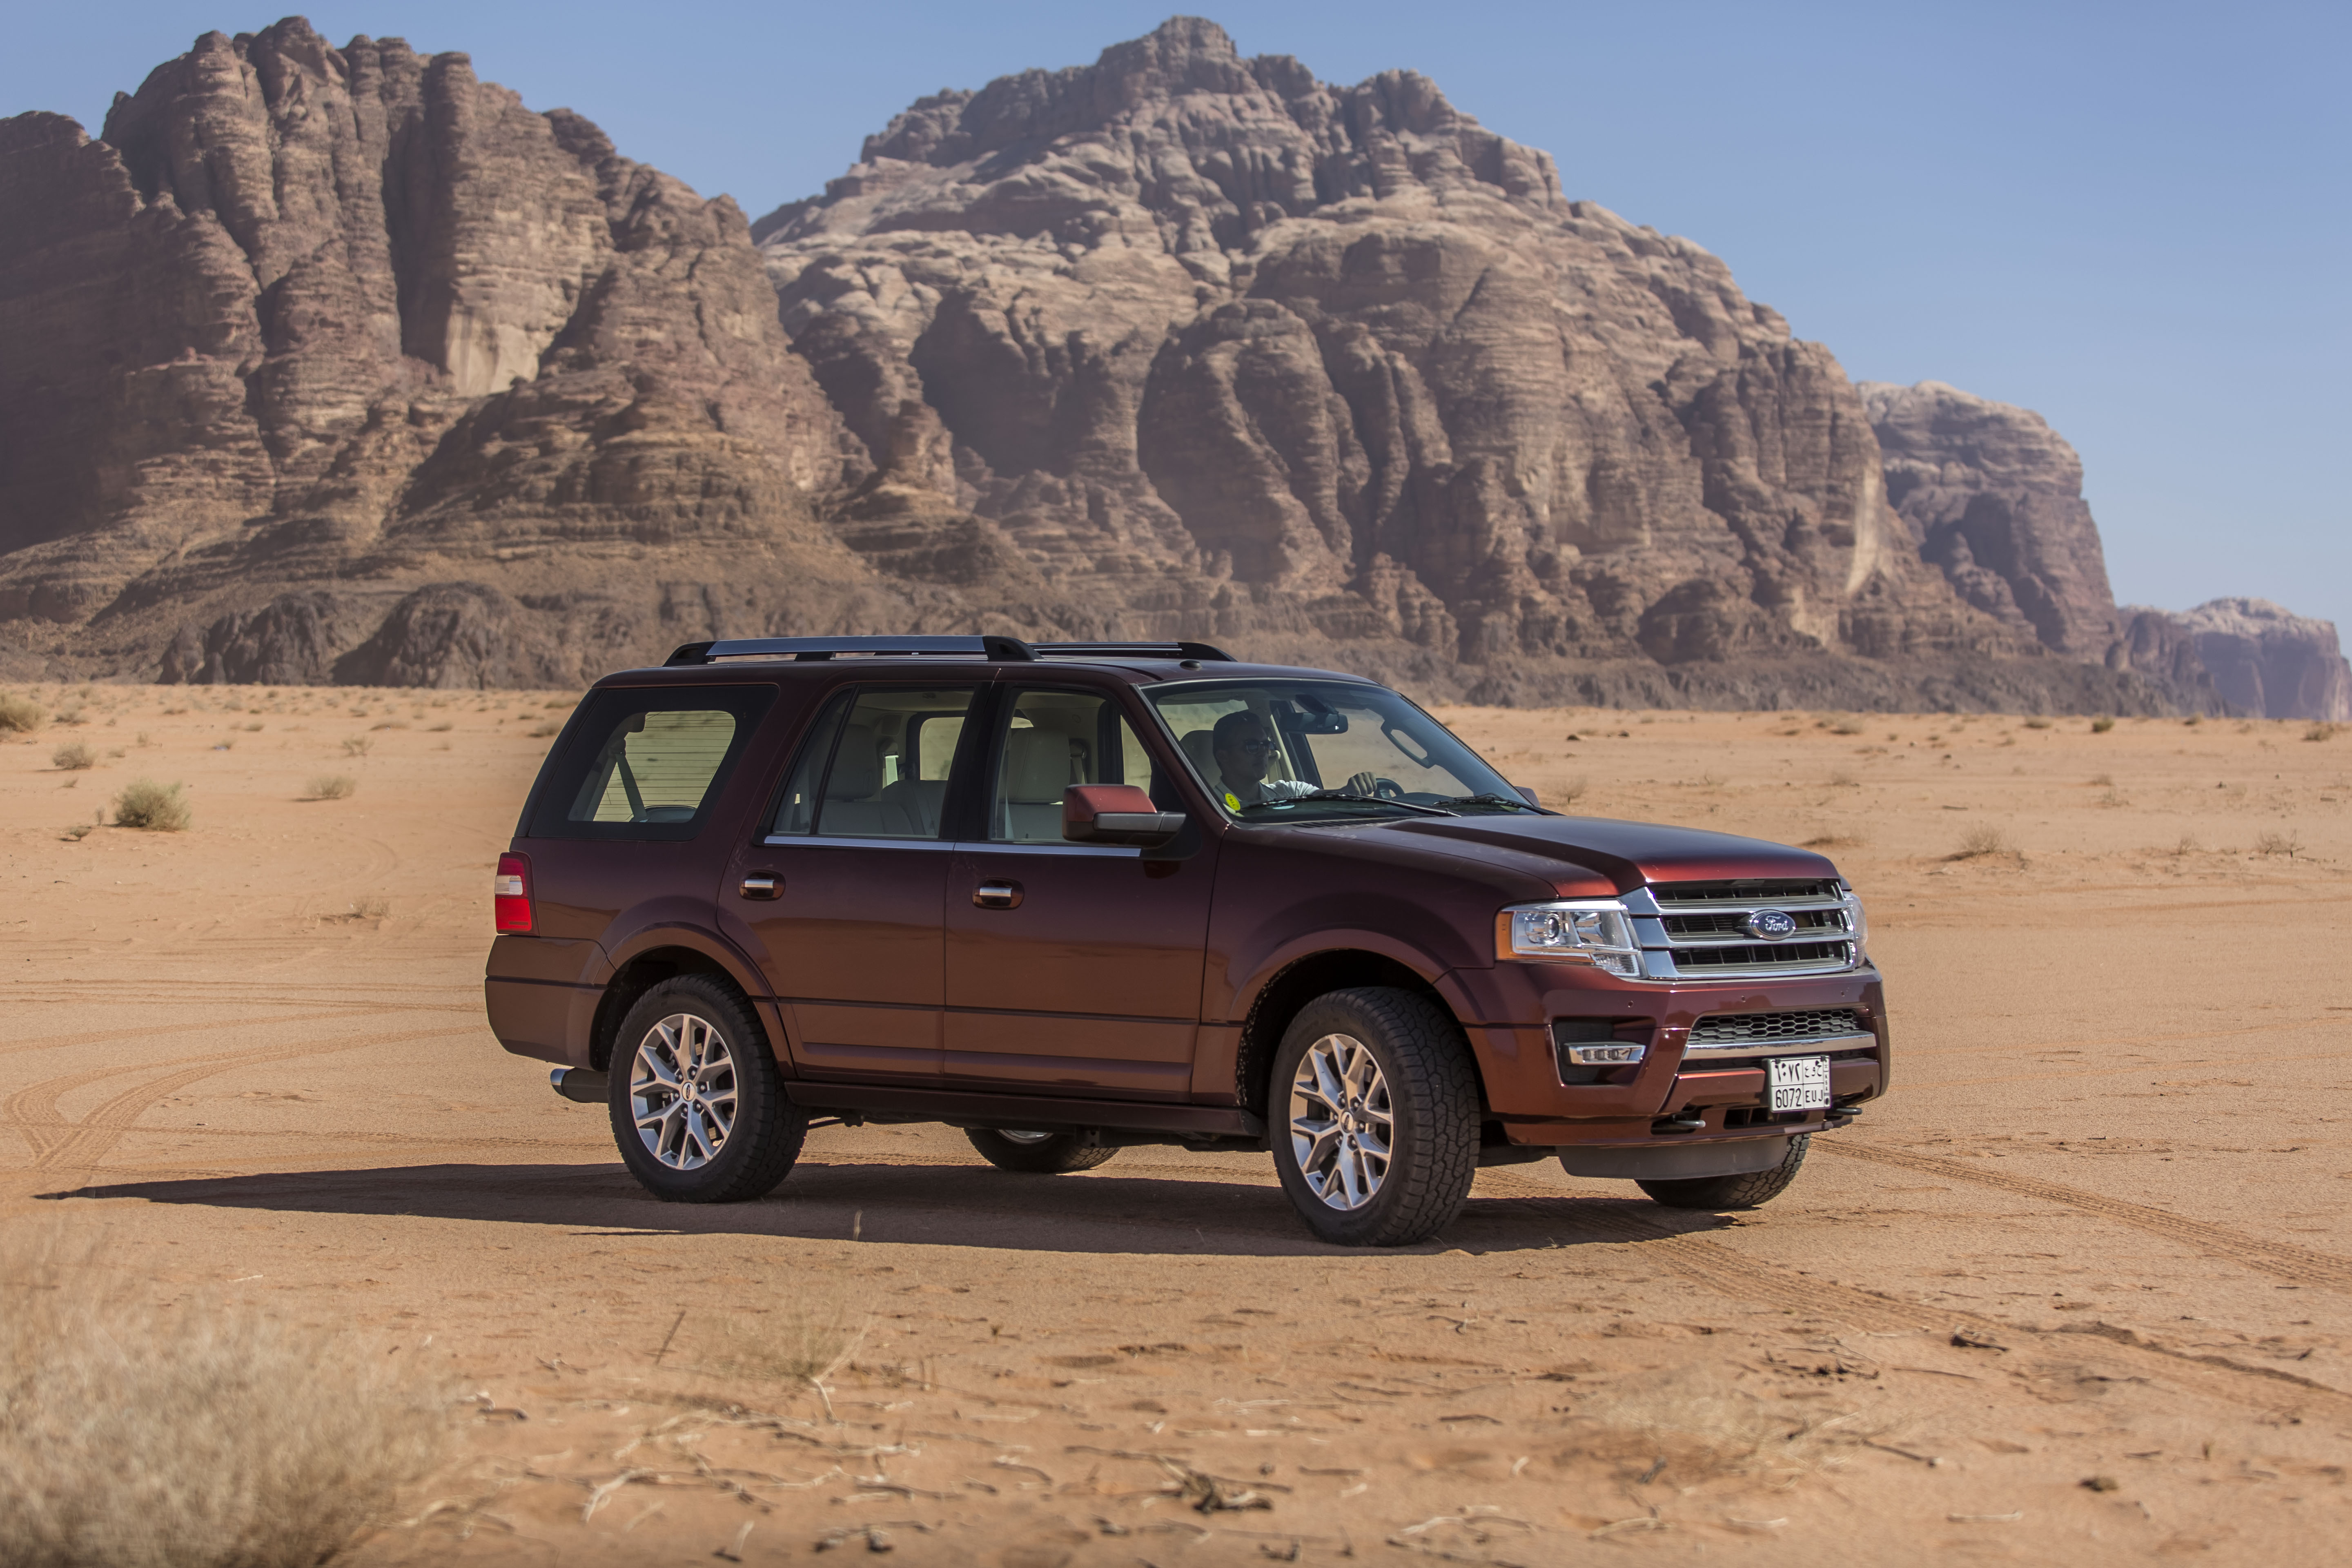 Ford Expedition - Wadi-e-Rum